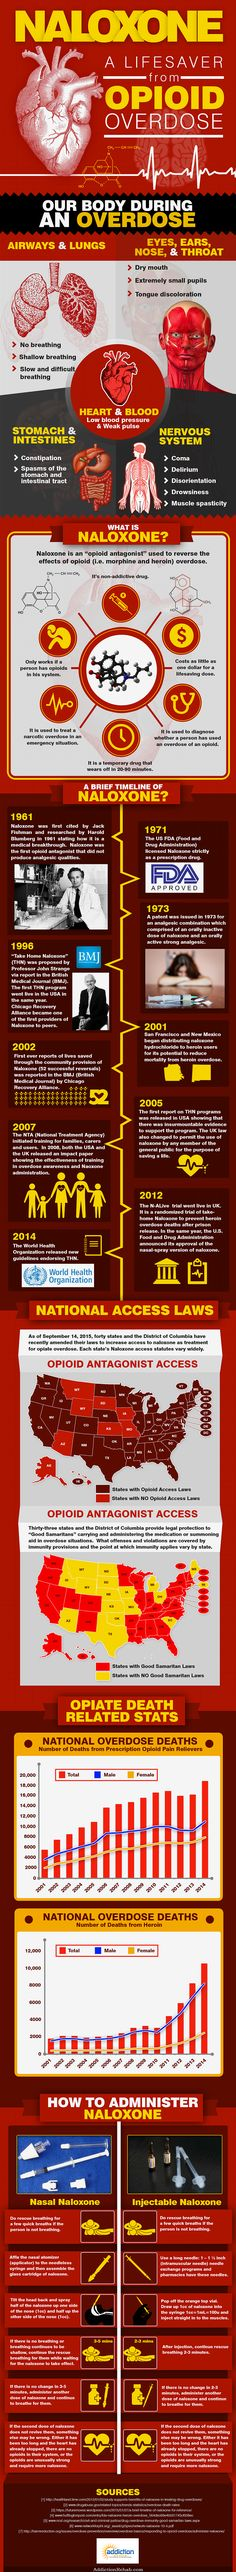 This infographic, courtesy of Addiction Rehab, provides comprehensive information on Naloxone, an Opioid antagonist used to reverse the effects of Opioid (i.e., morphine and heroin) overdosed.